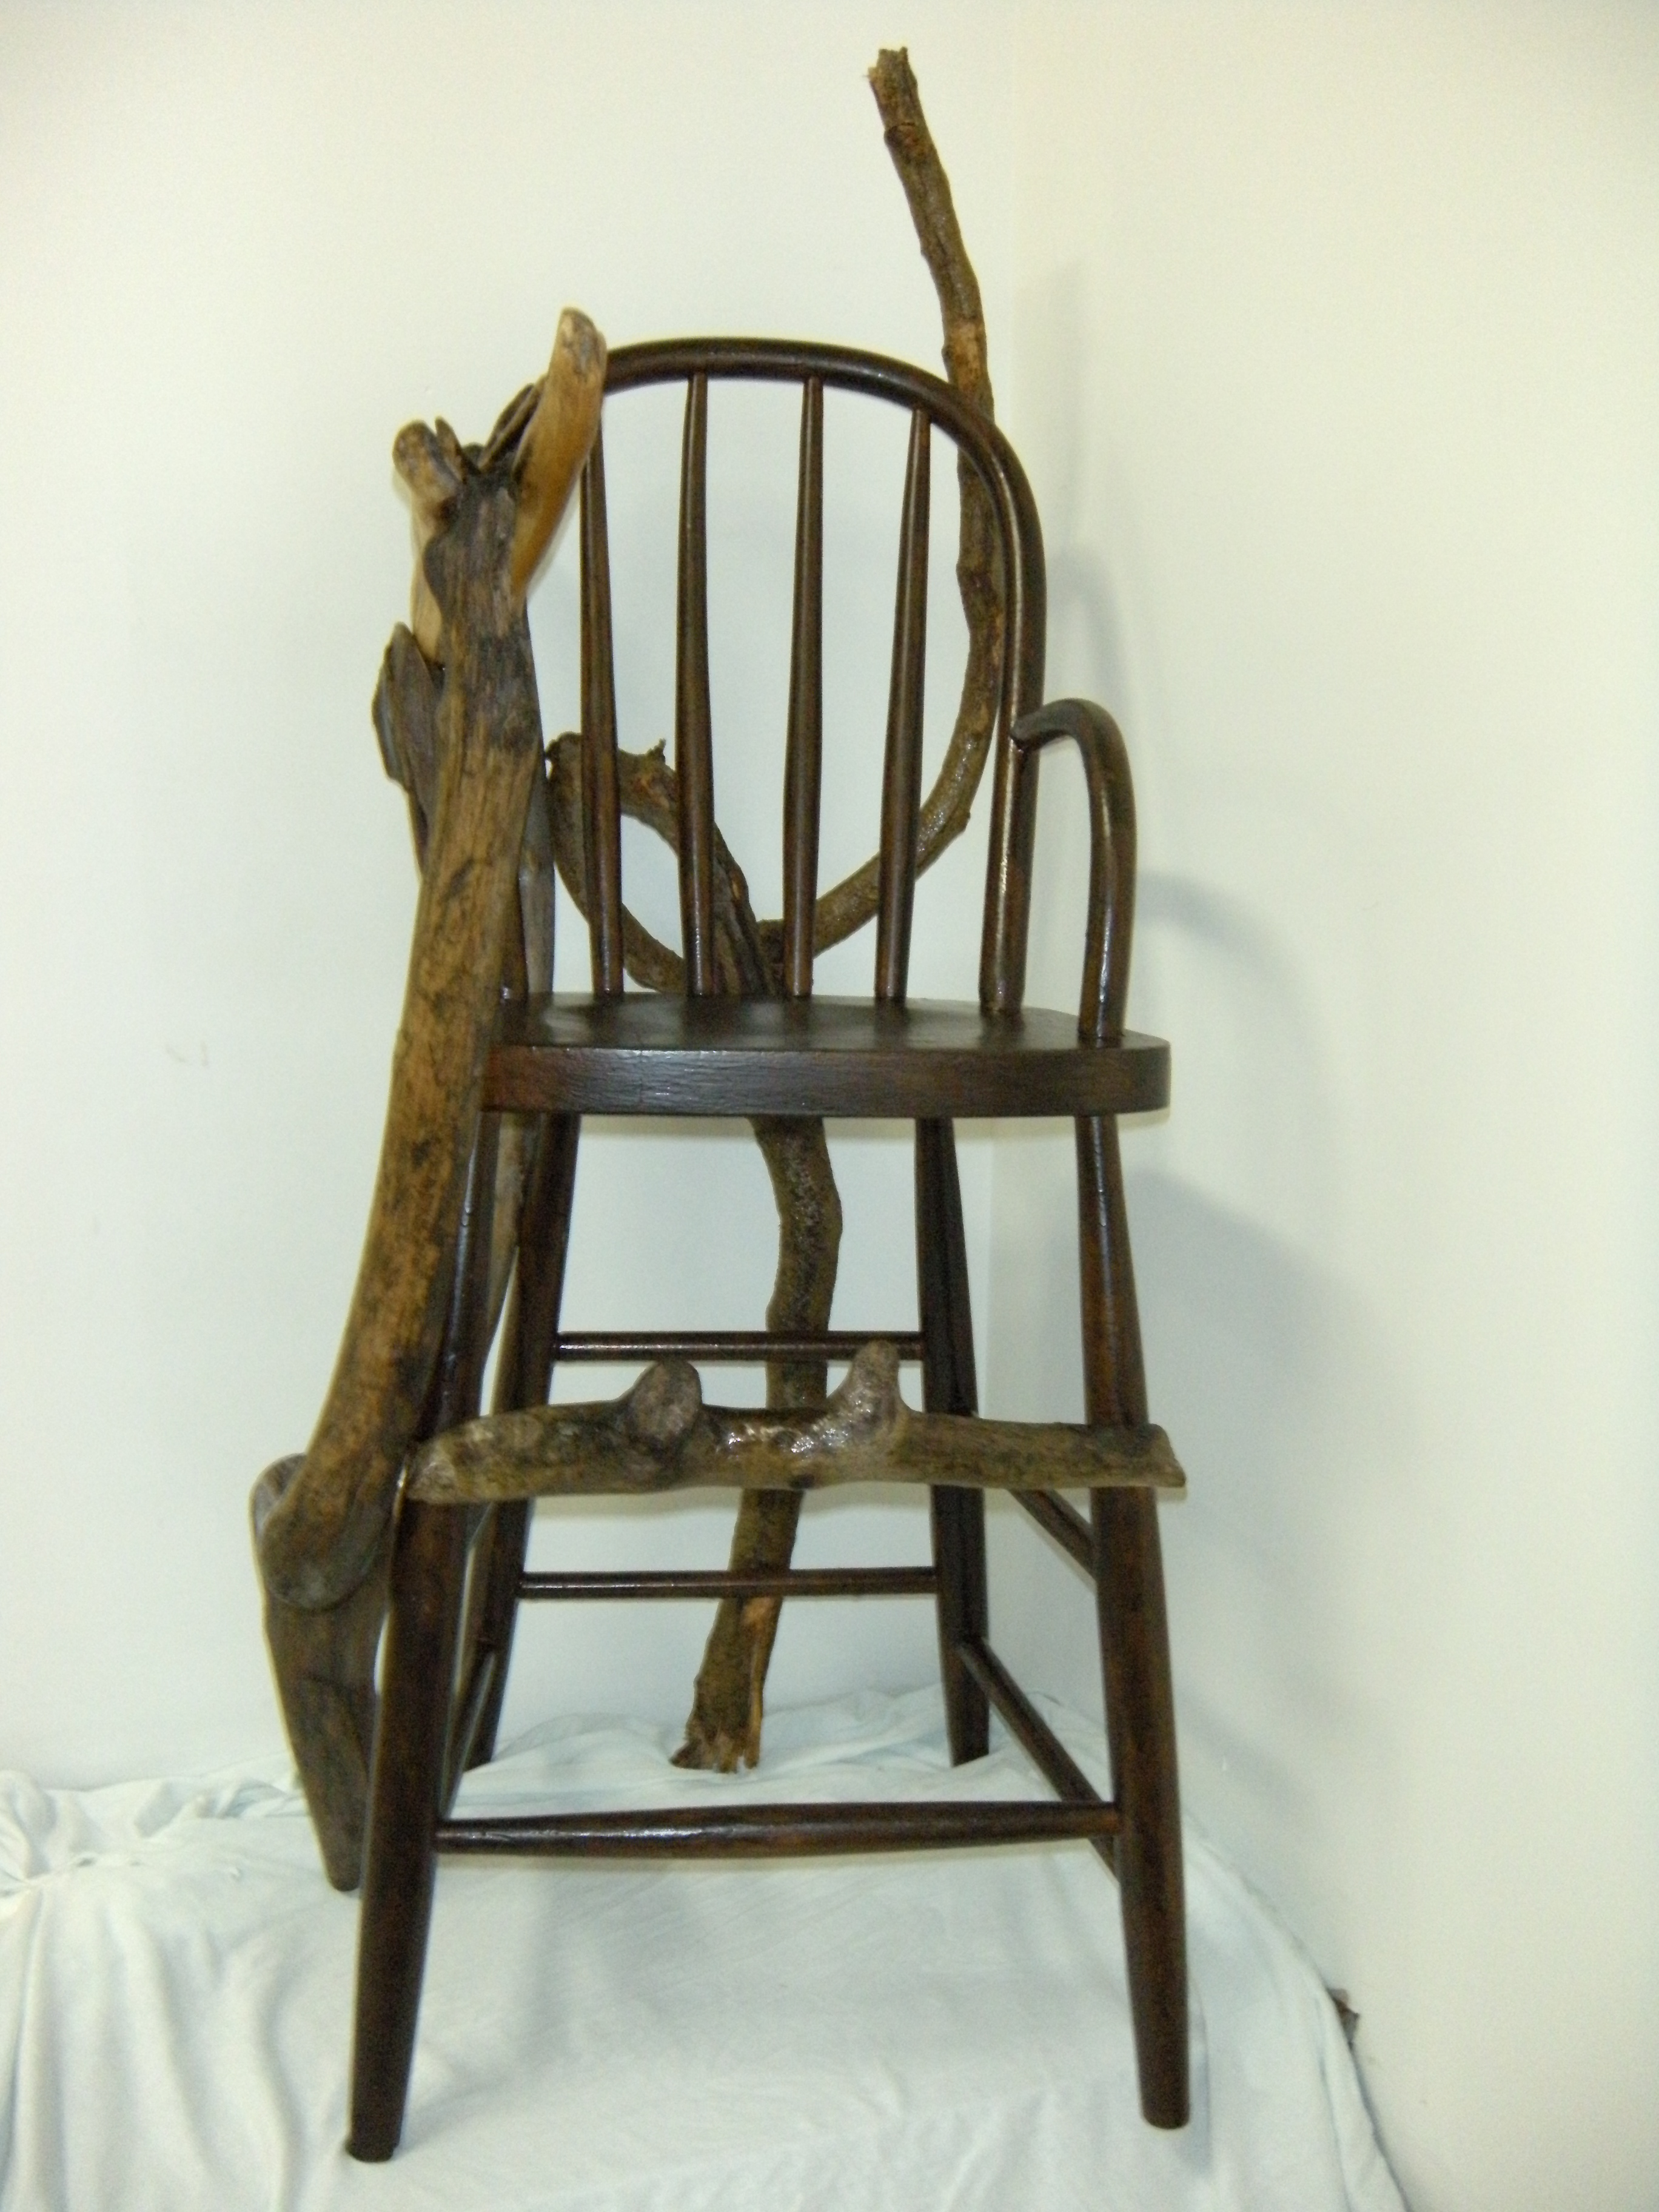 Resurrection Chair 2009 by J.Paradisi